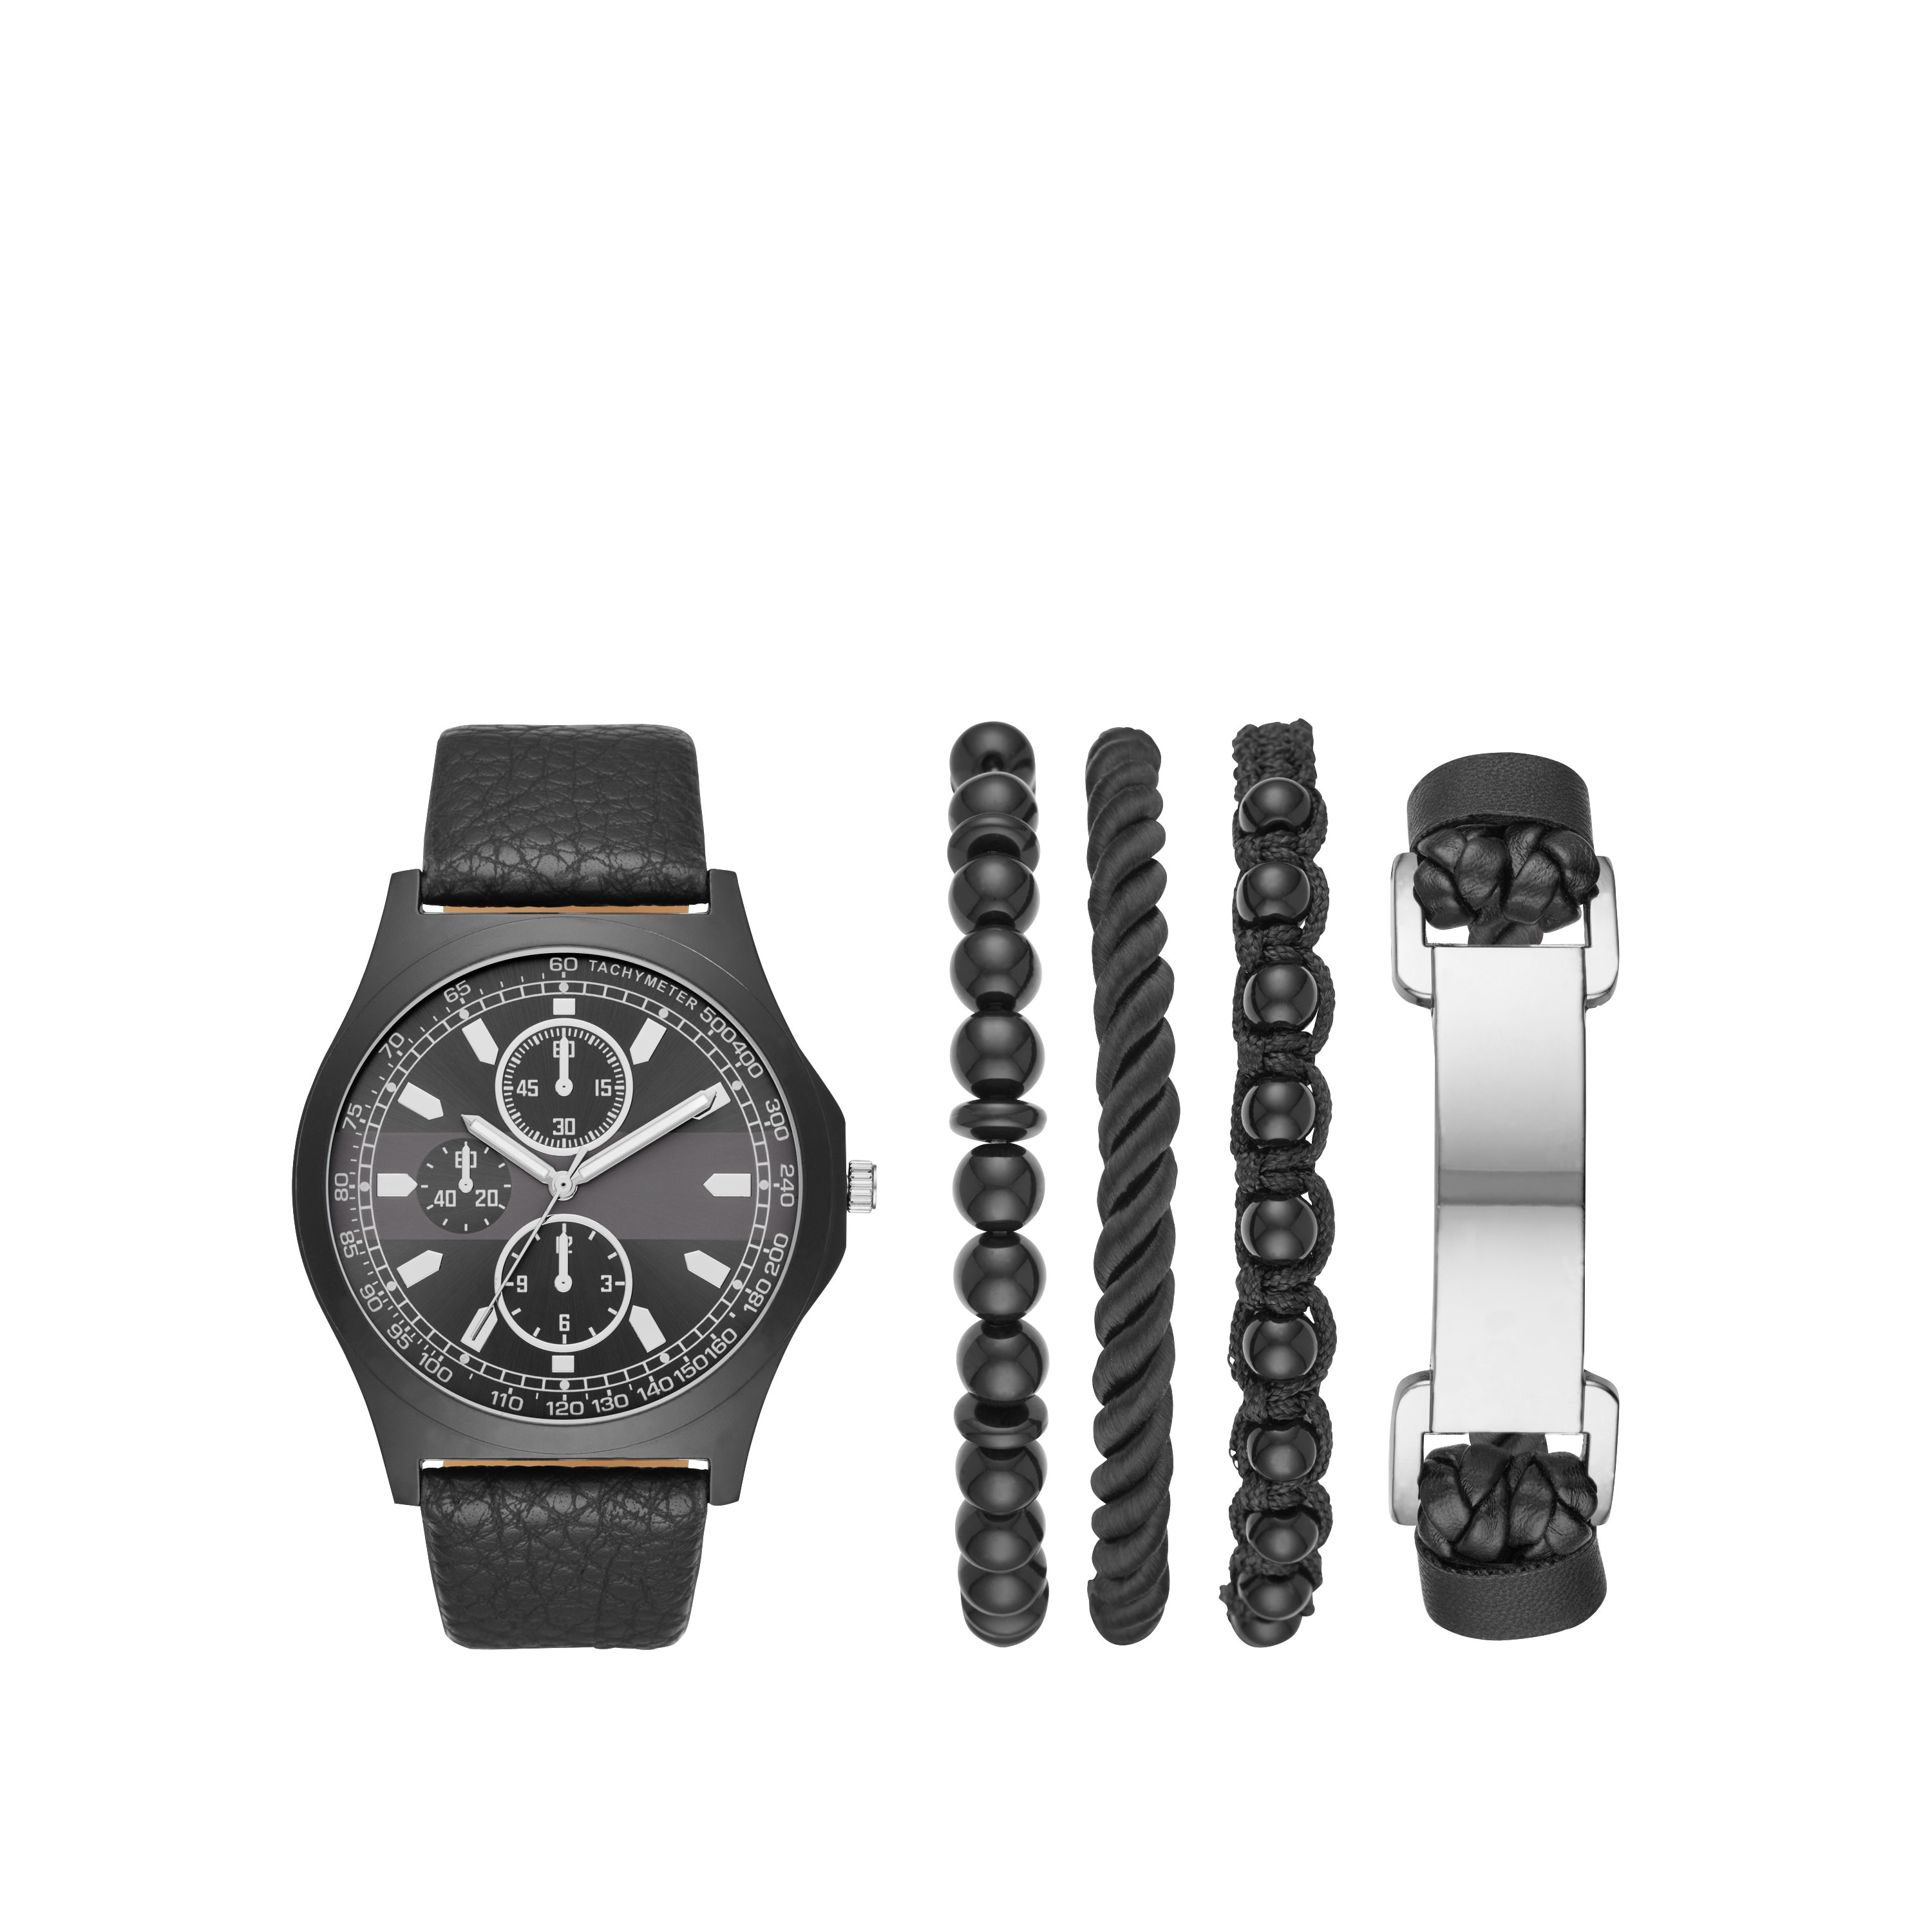 Men's Watch Gift Set with Bracelets